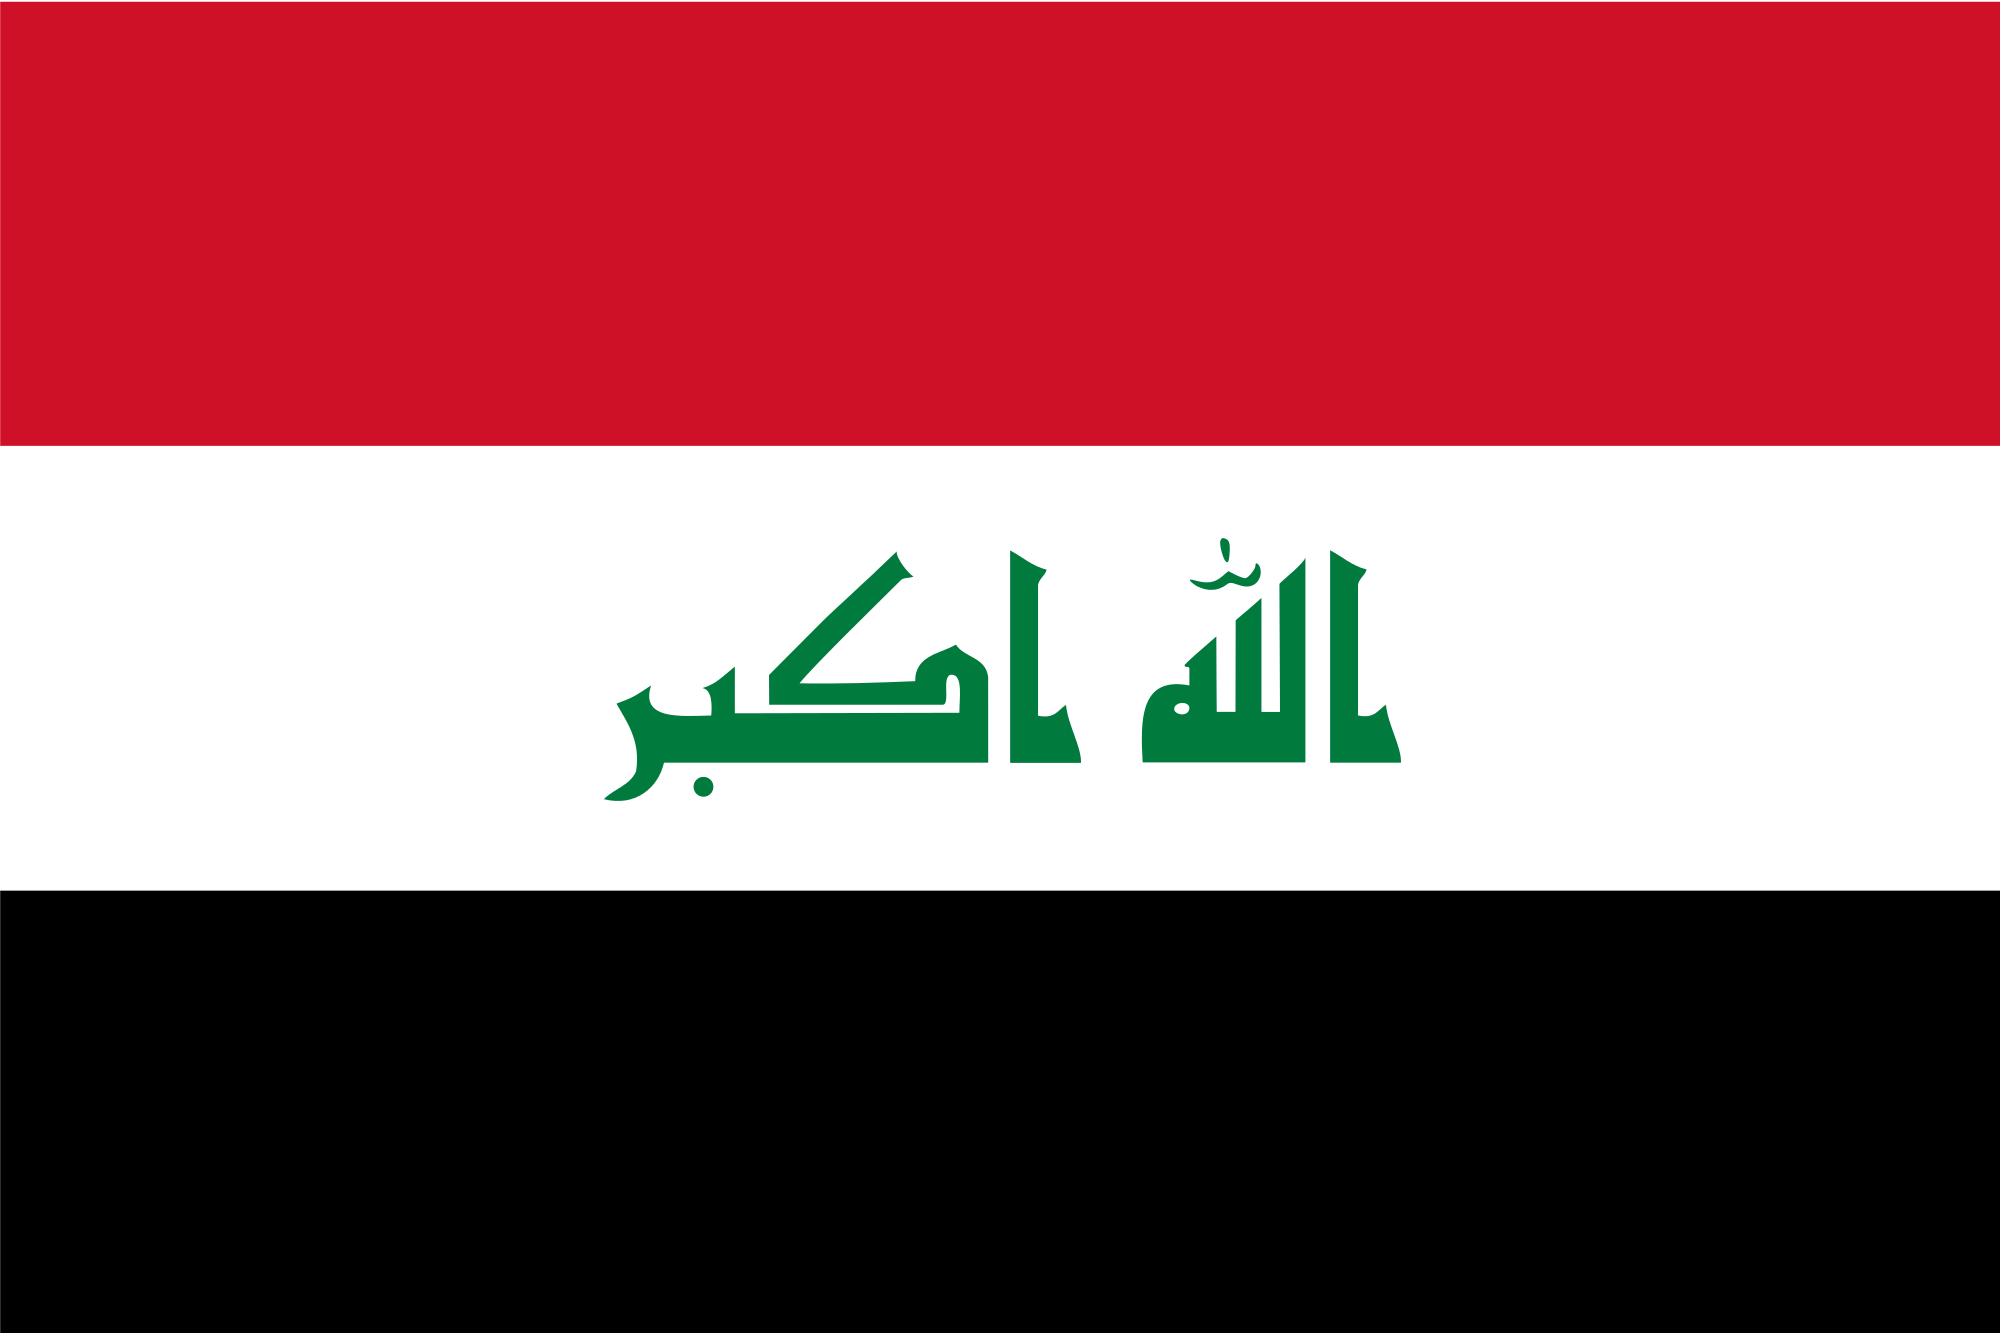 Iraq Flag colors meaning history of Iraq Flag